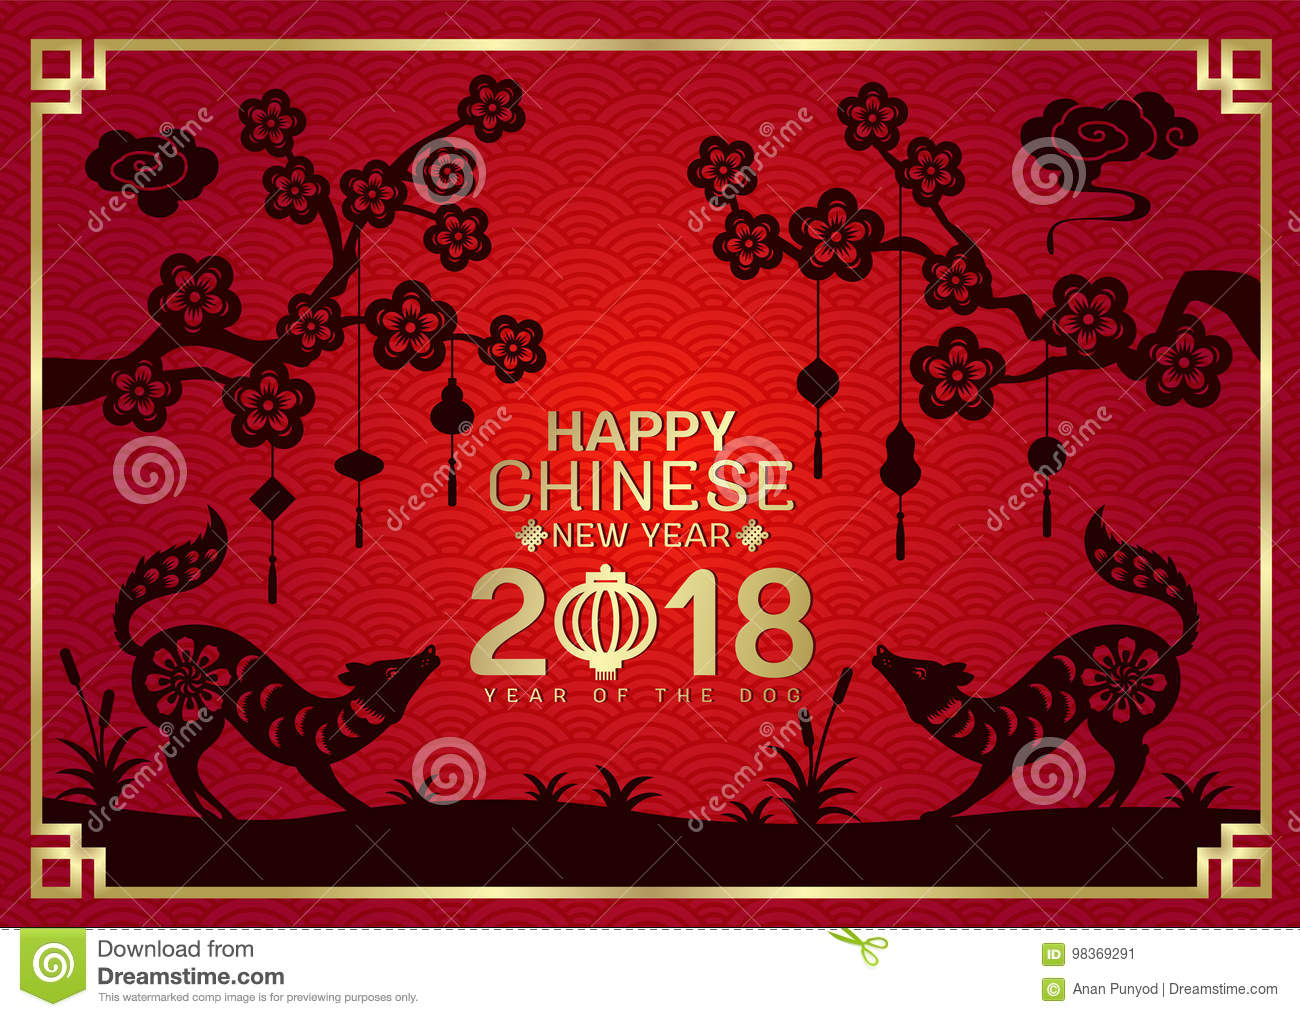 Happy Chinese New Year 2018 With Silhouette Paper Cut Dog